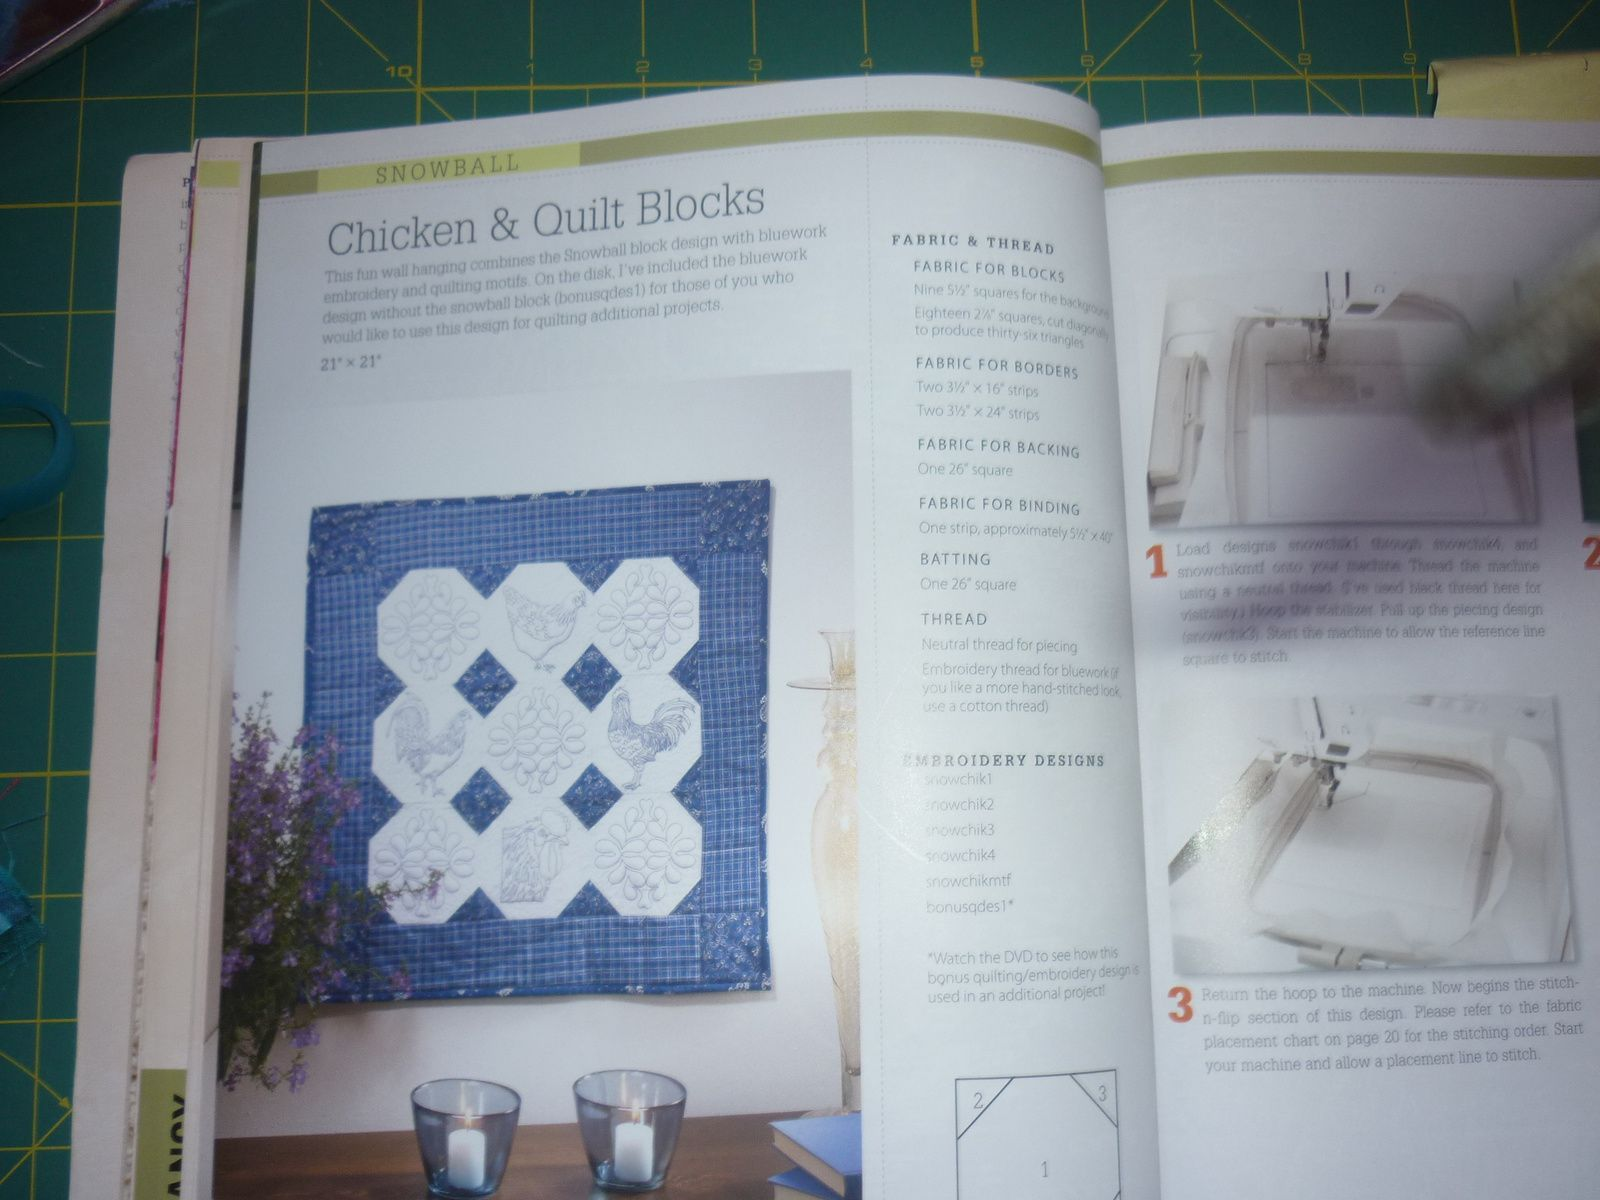 CHICKEN & QUILT BLOCKS